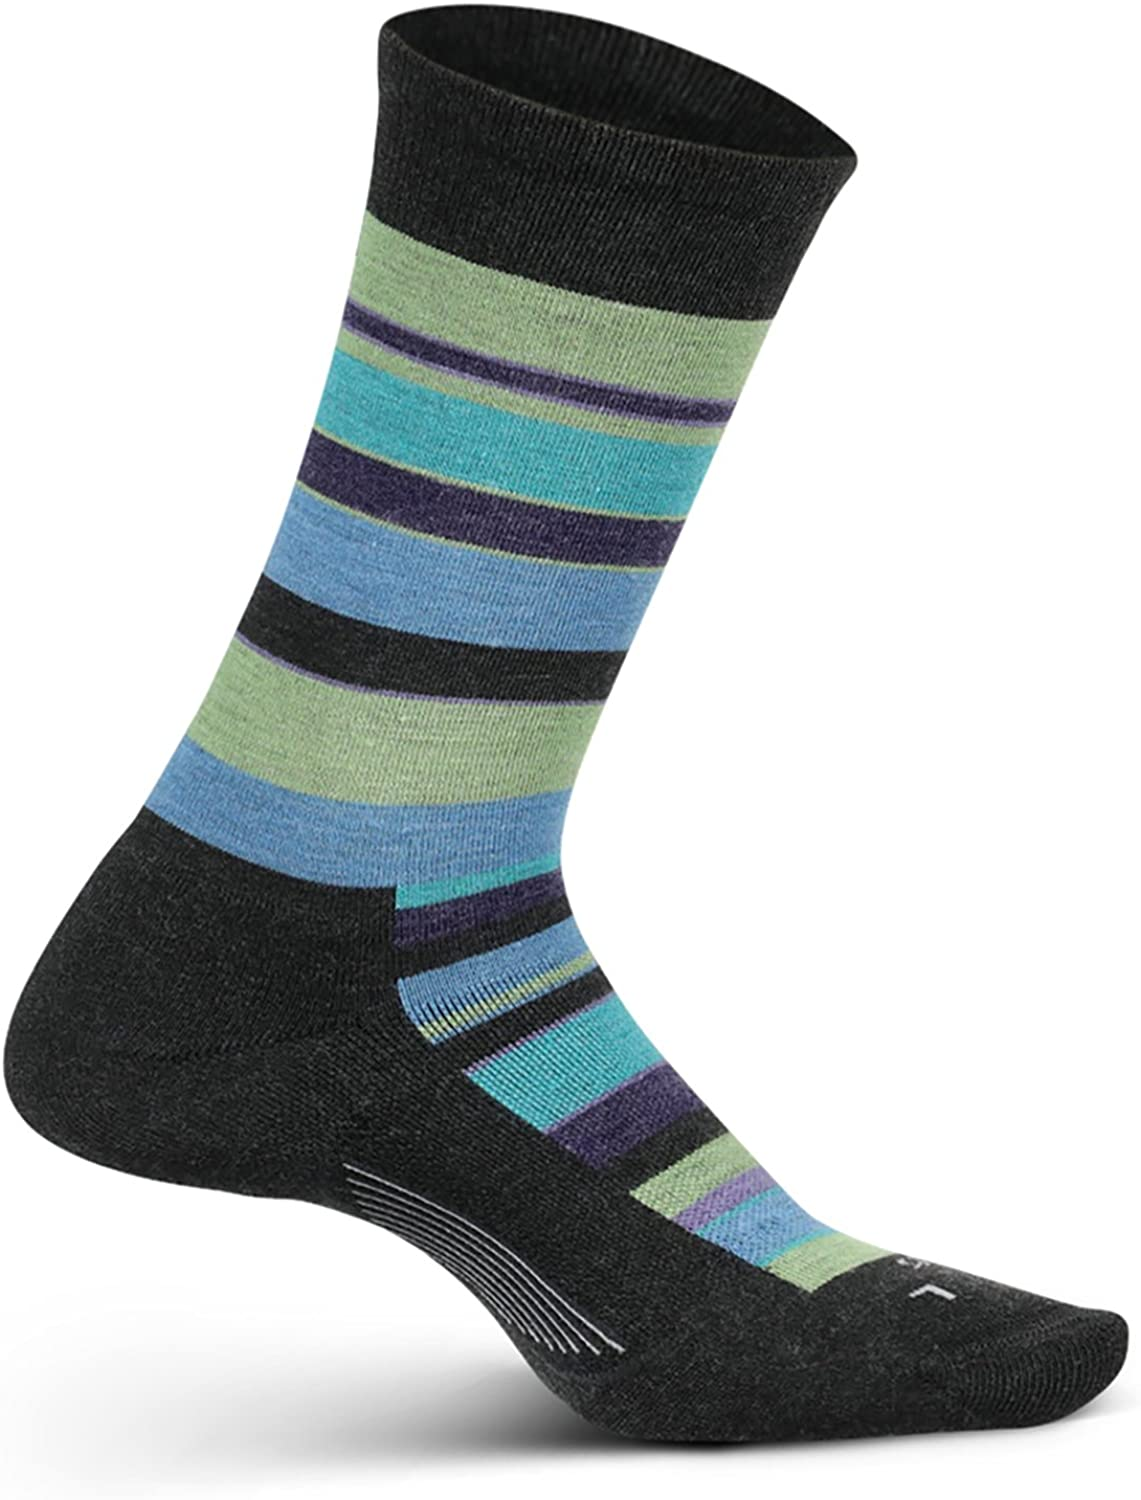 Be Bold Cushion Crew Size Small Feetures Womens Everyday Performance Dress Sock Charcoal